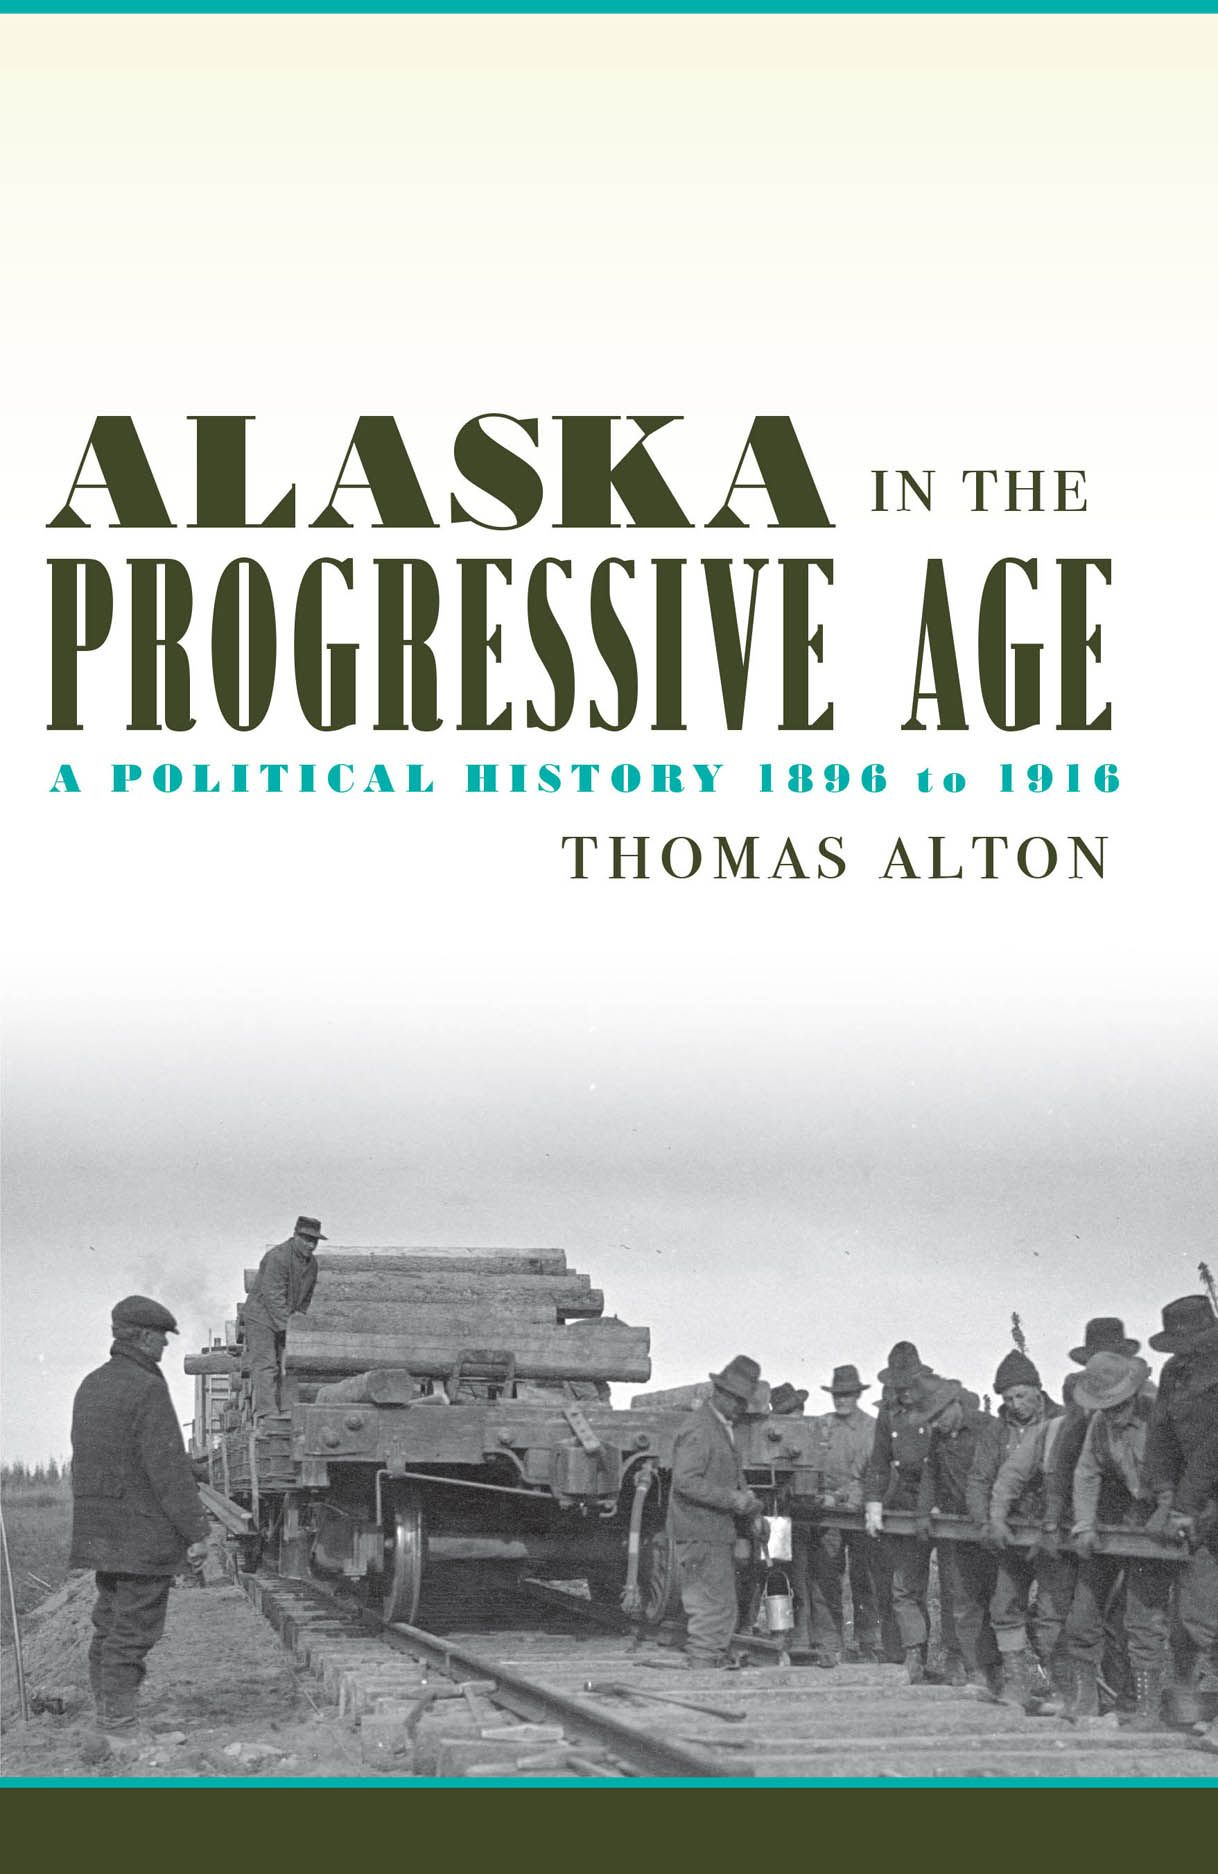 Alaska in the Progressive Age: A Political History, 1896 to 1916